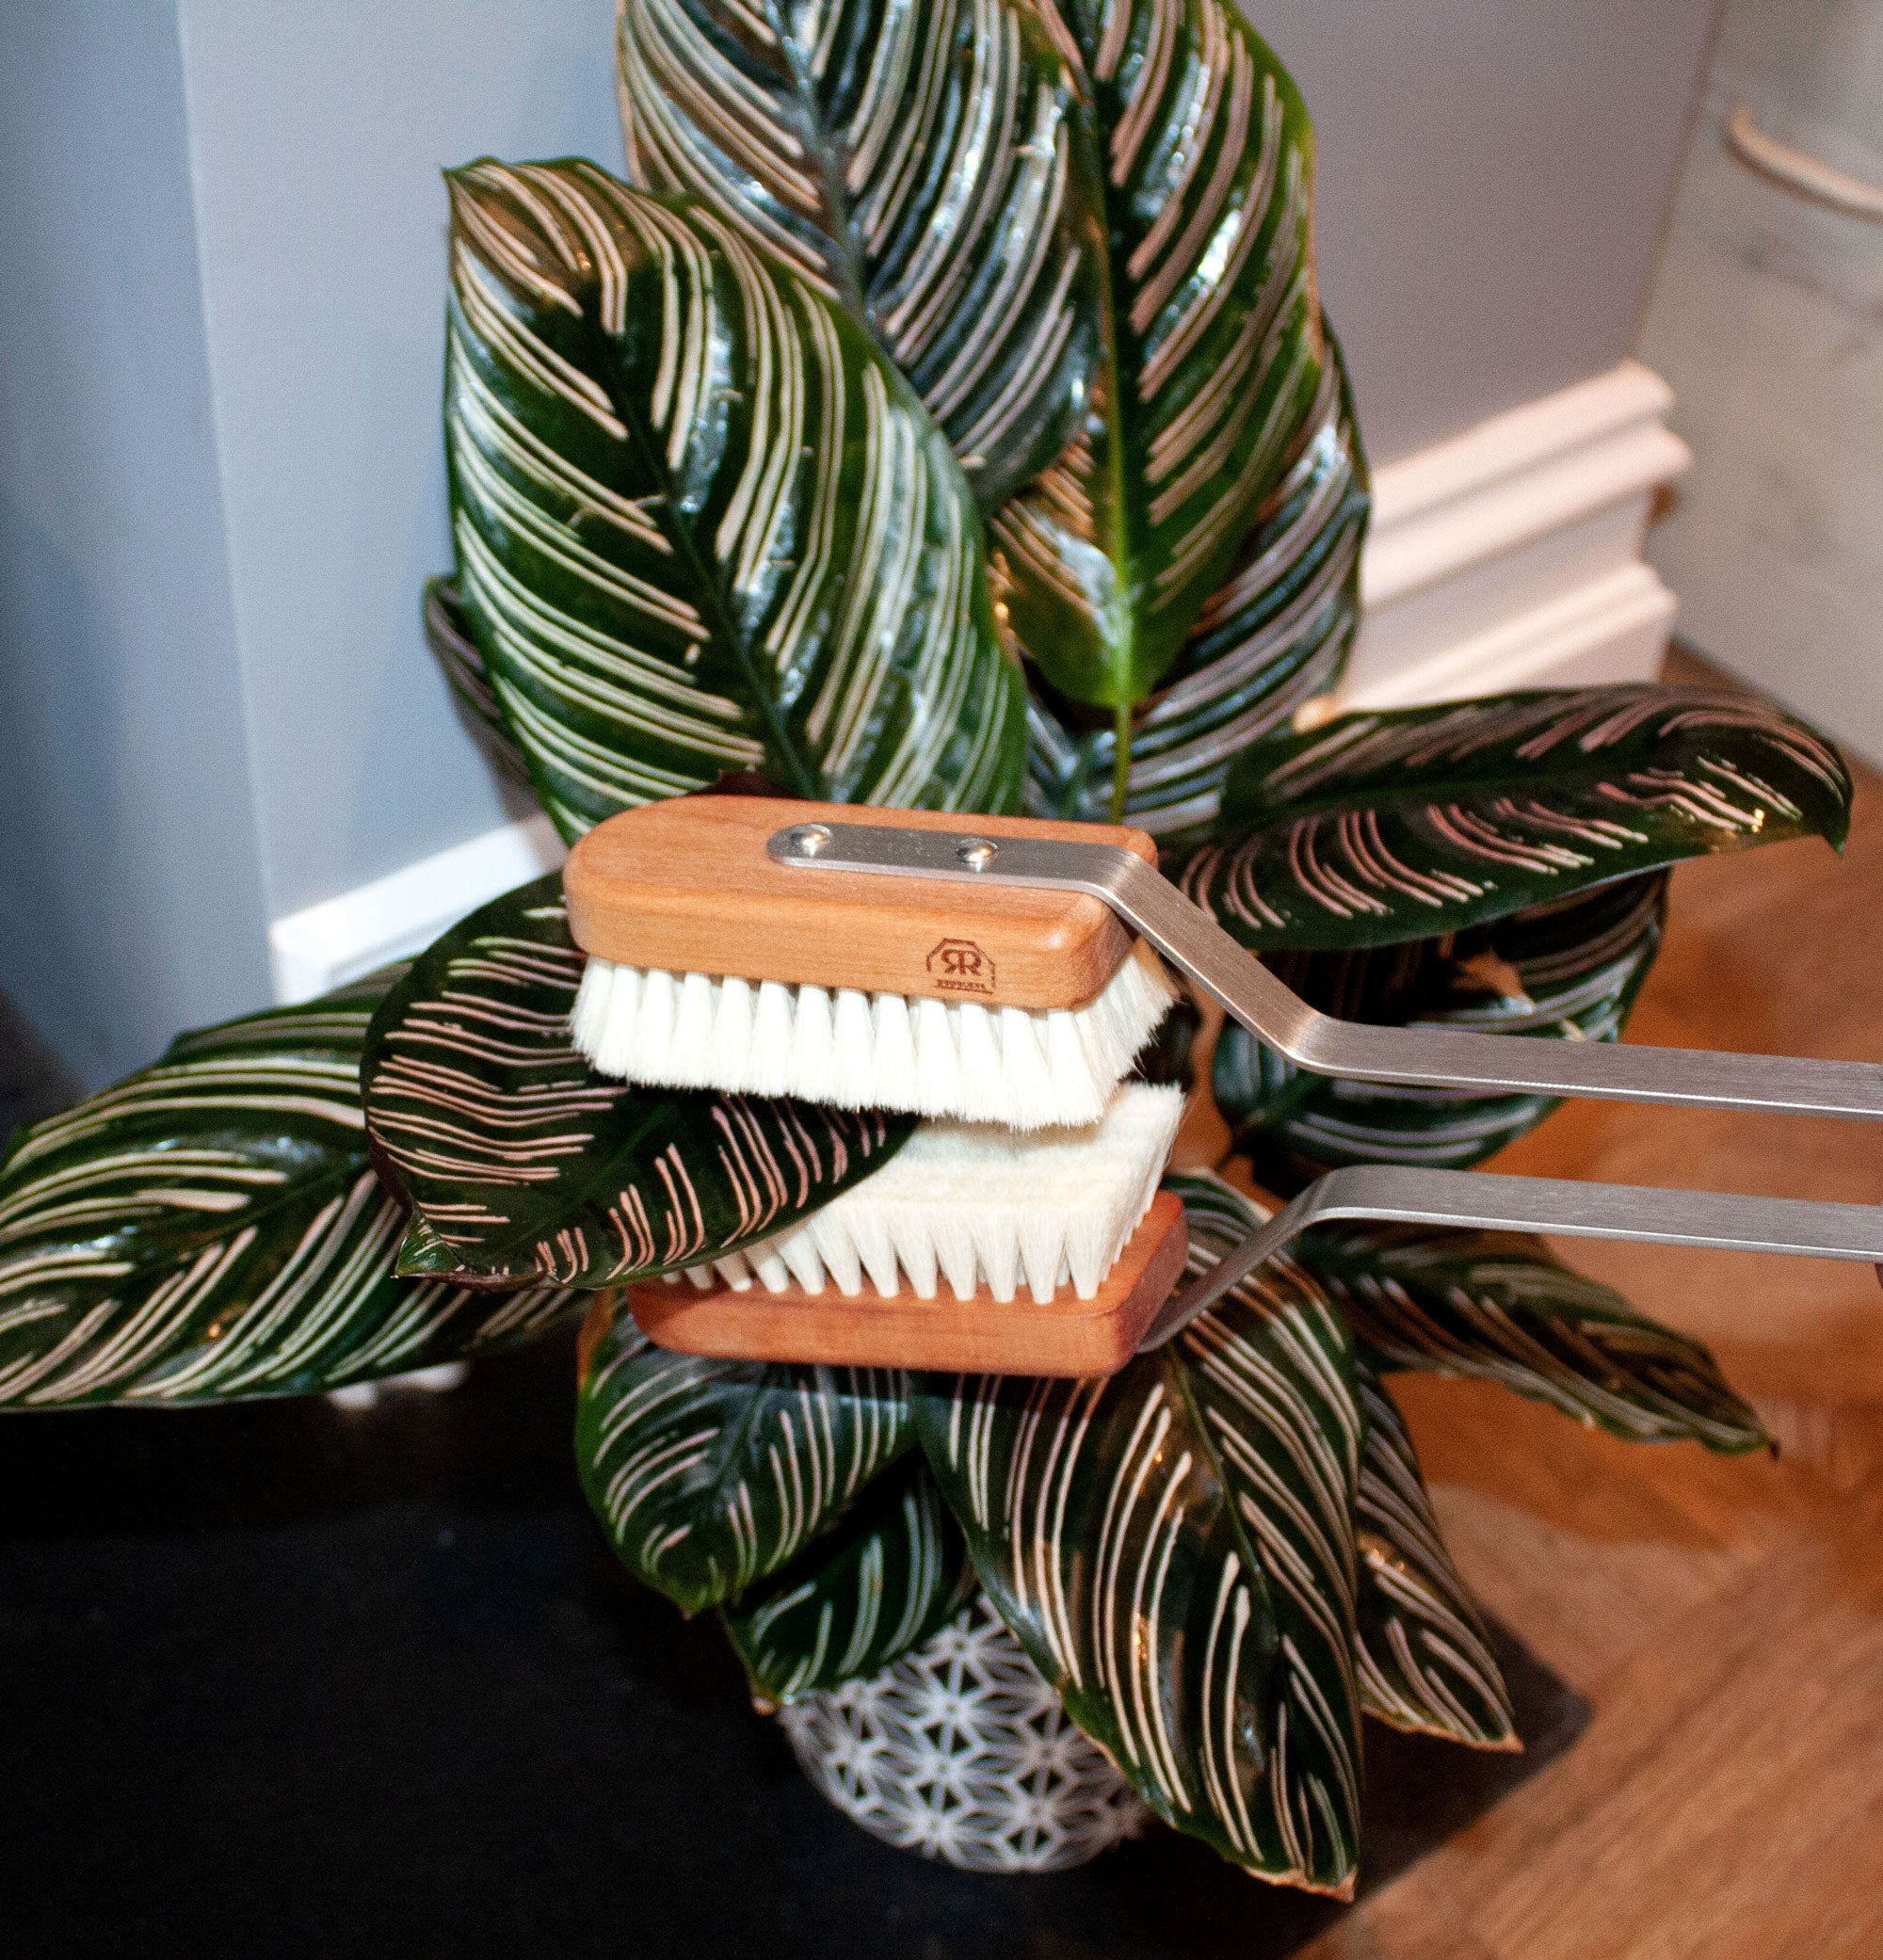 Redecker Houseplant Super soft LeafCleaning Brush with Pear Wood